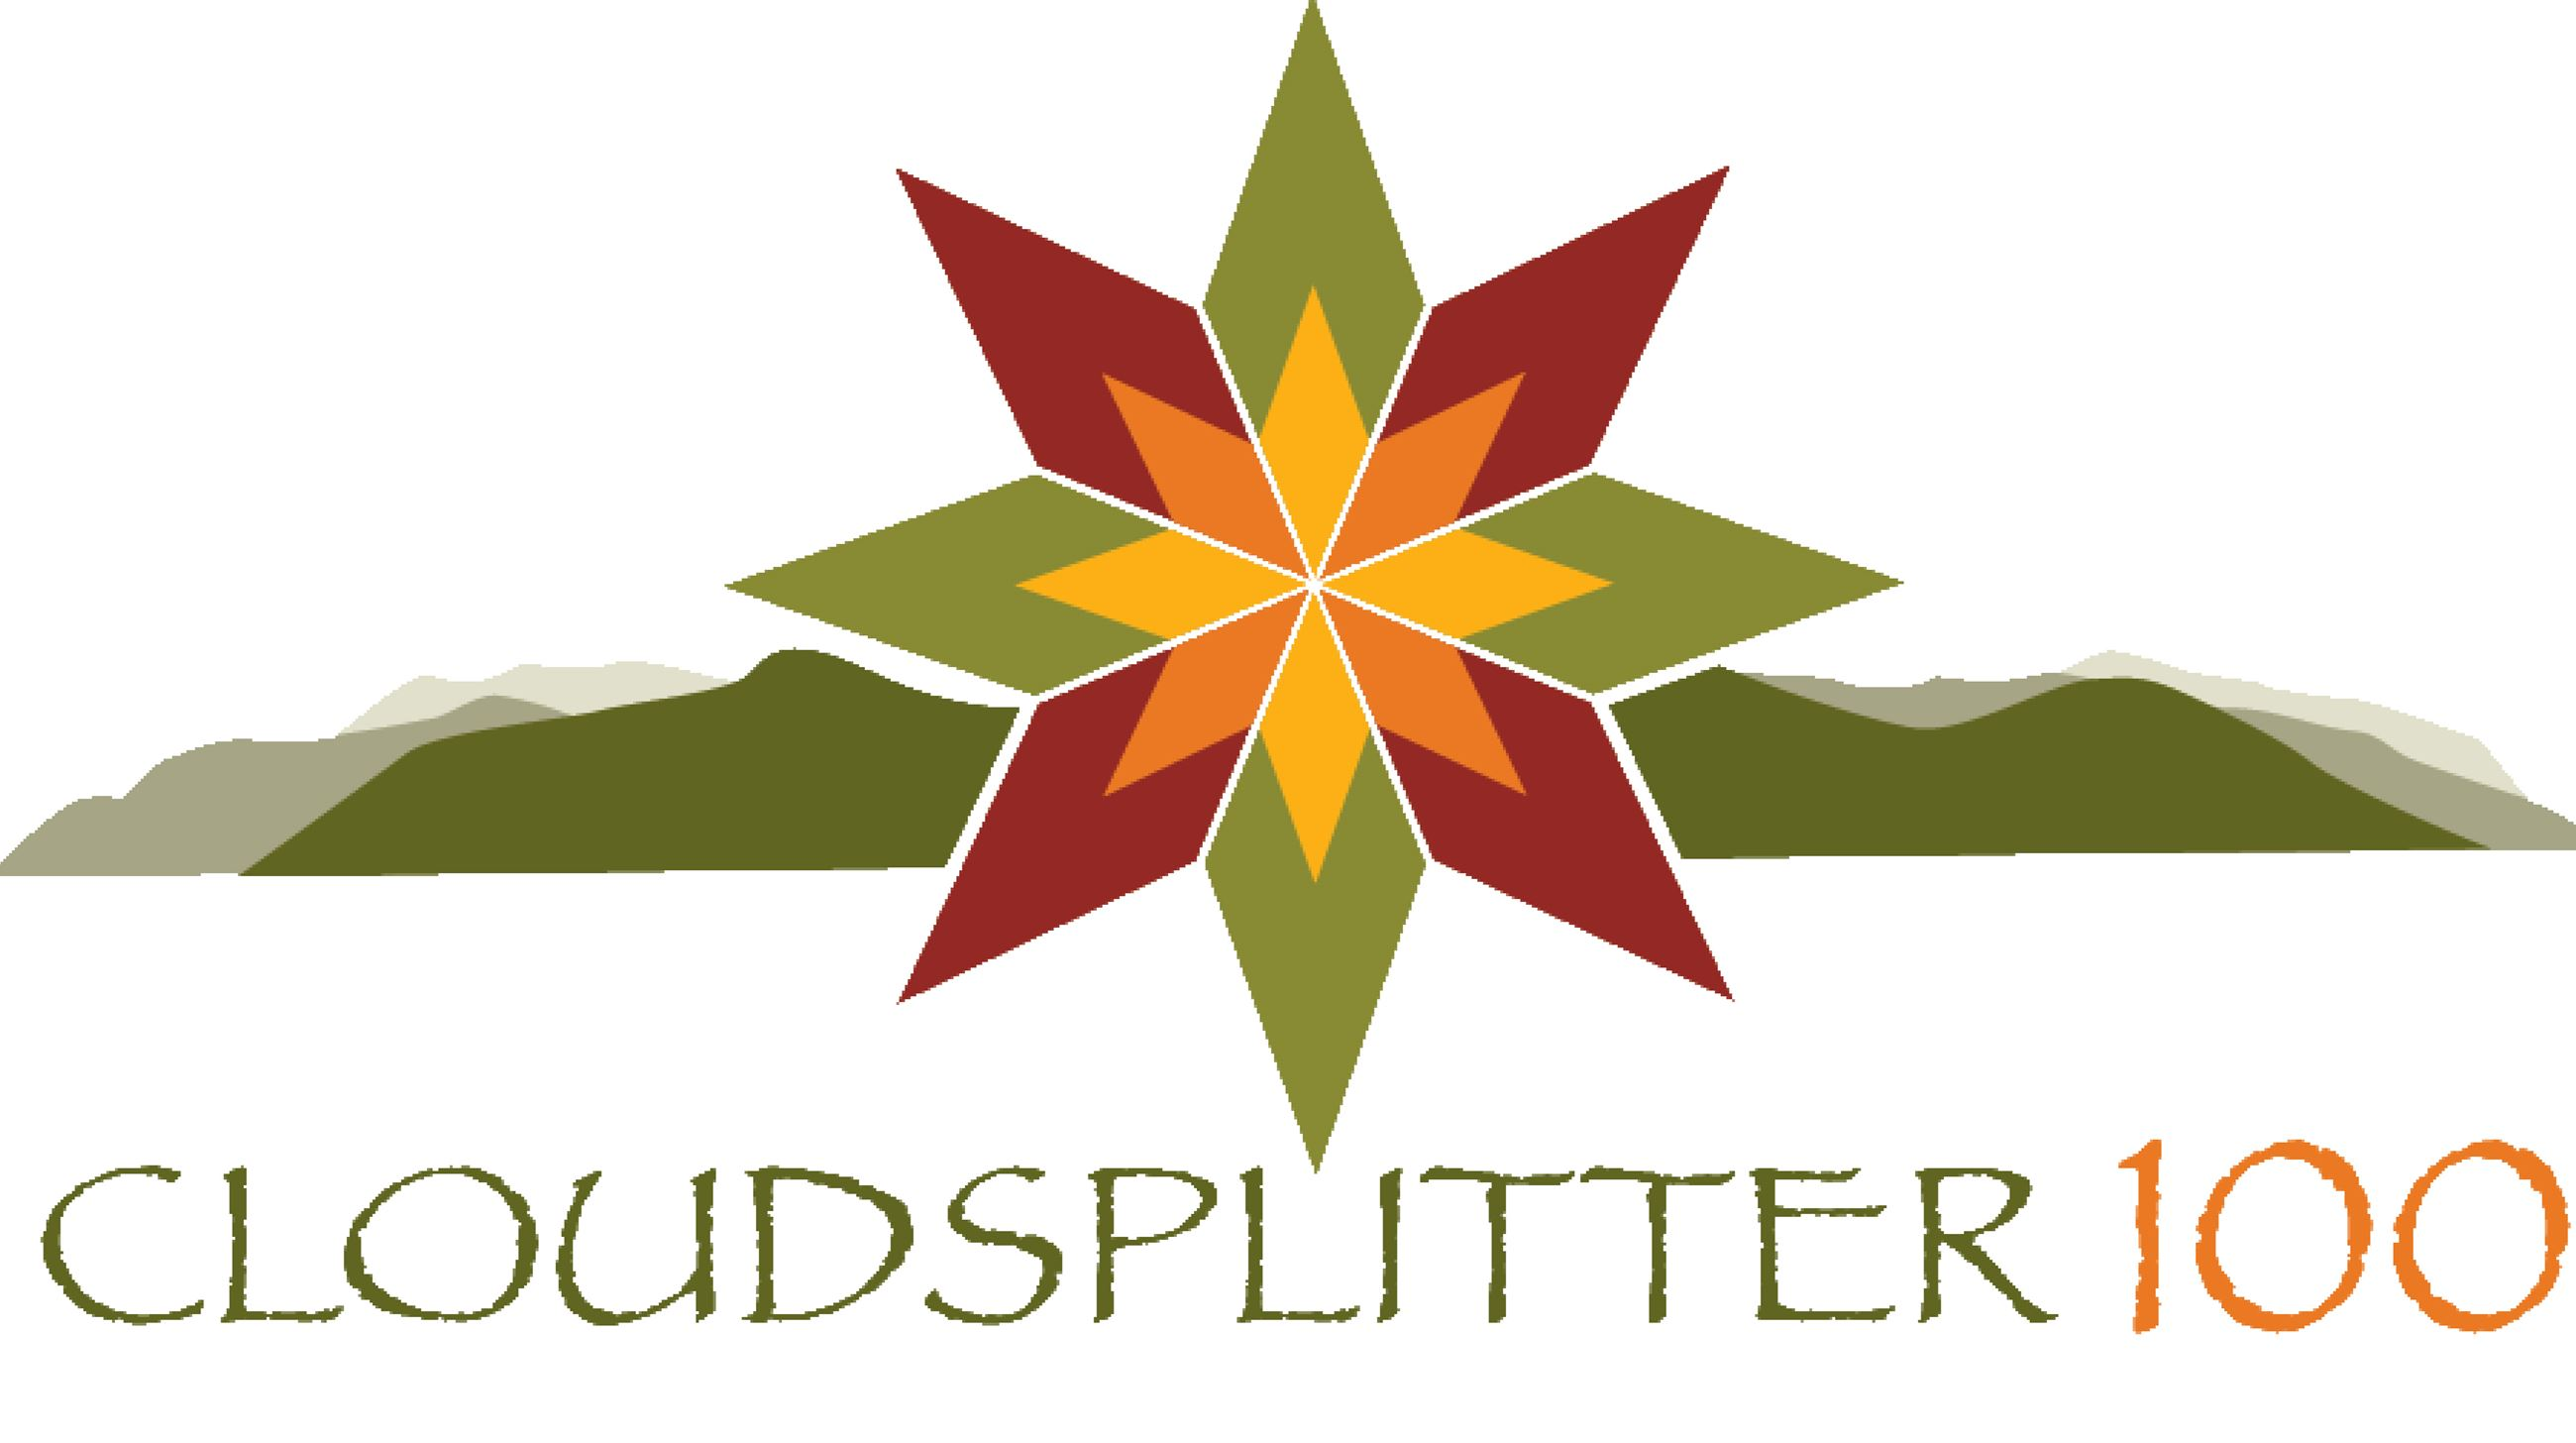 Photo of Cloudsplitter 100 race logo